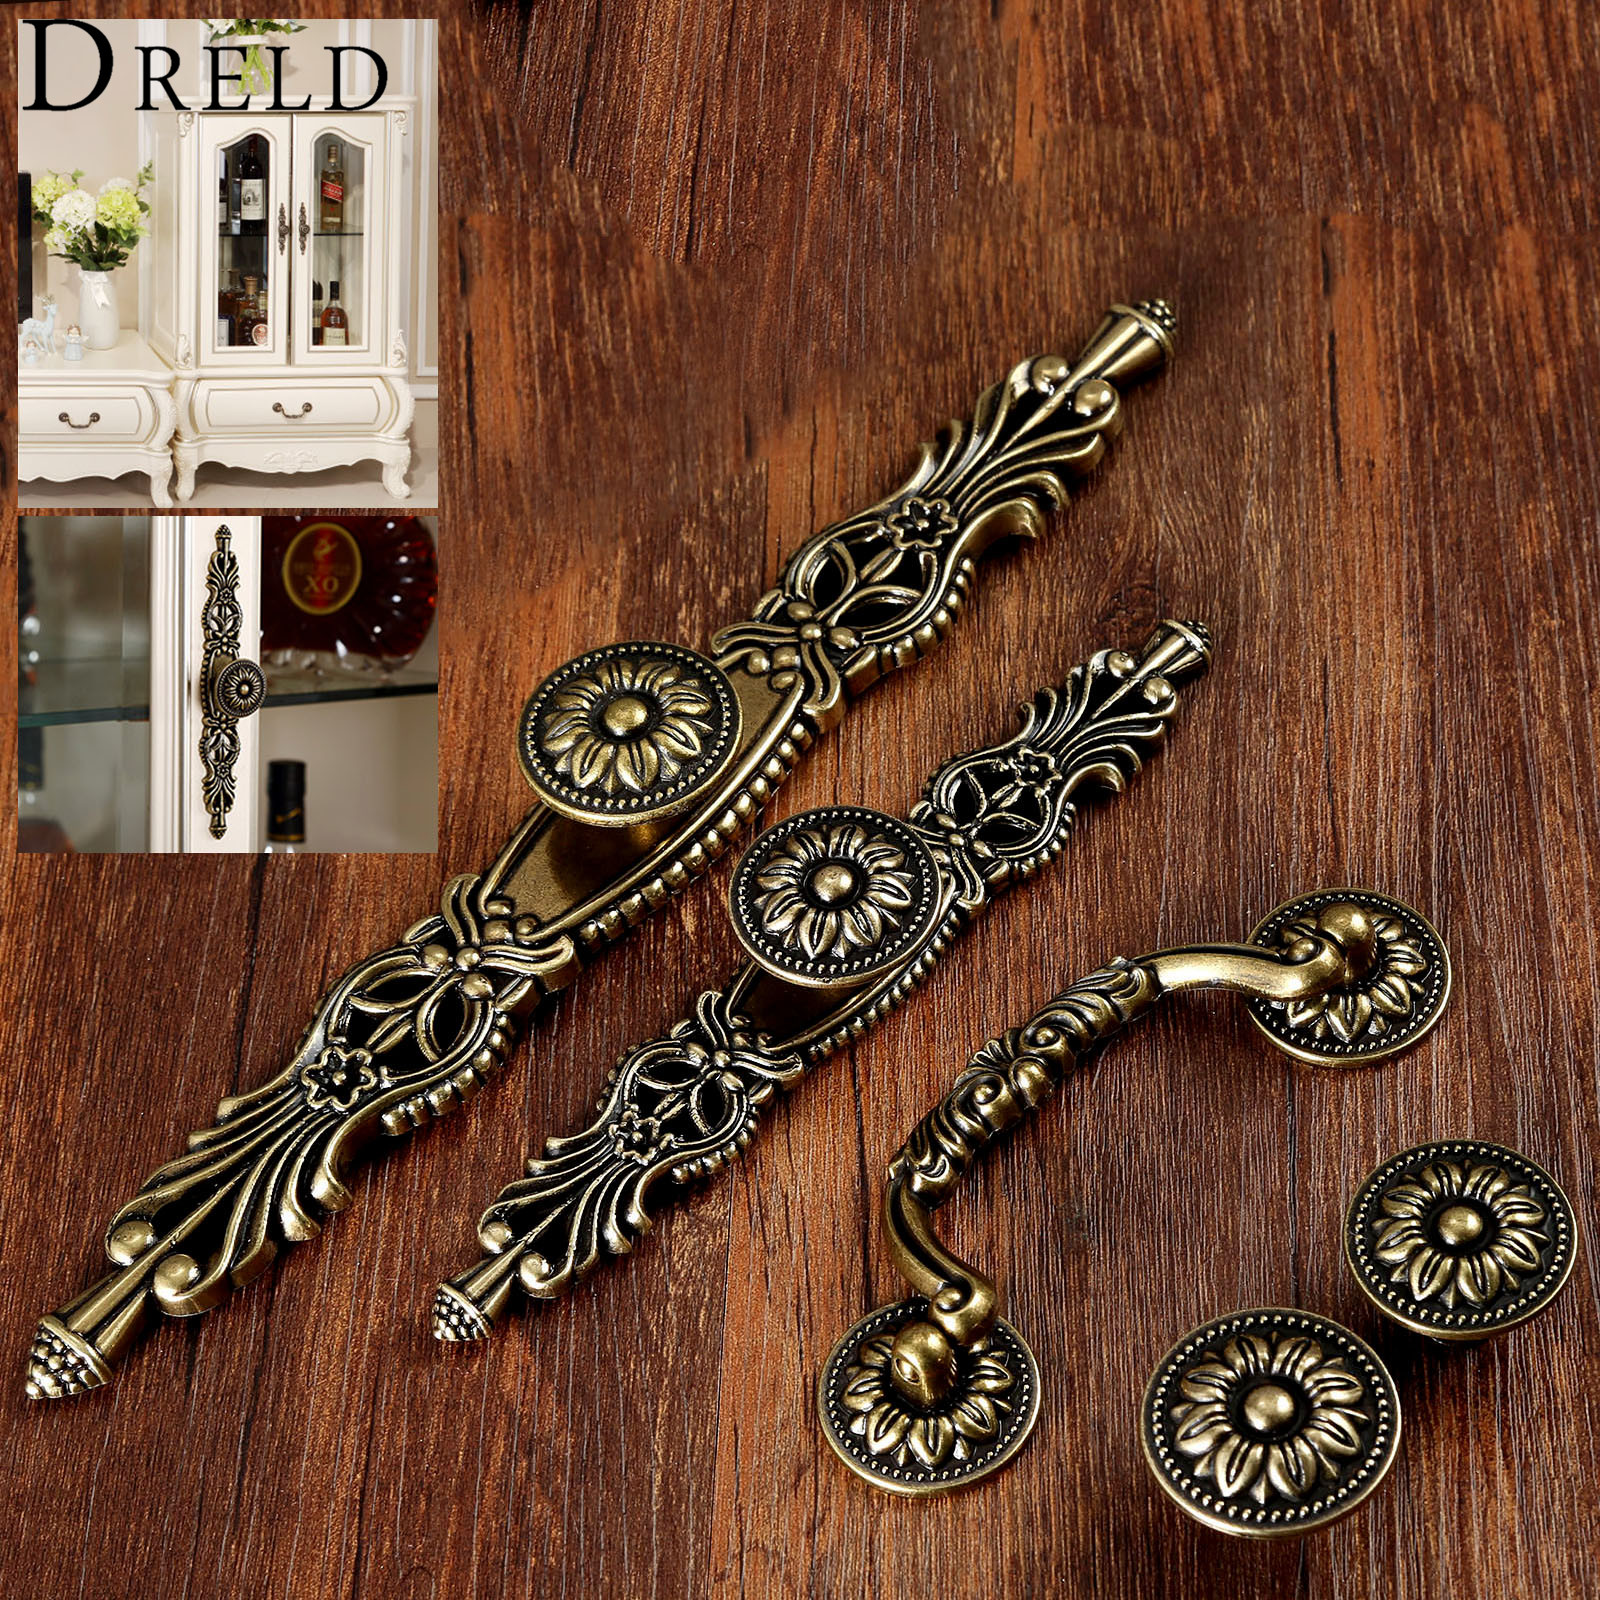 DRELD Antique Furniture Handle Vintage Cabinet Knobs and Handles Wardrobe Cupboard Drawer Kitchen Pull Knob Furniture Hareware 1pc furniture handles wardrobe door pull drawer handle kitchen cupboard handle cabinet knobs and handles decorative dolphin knob